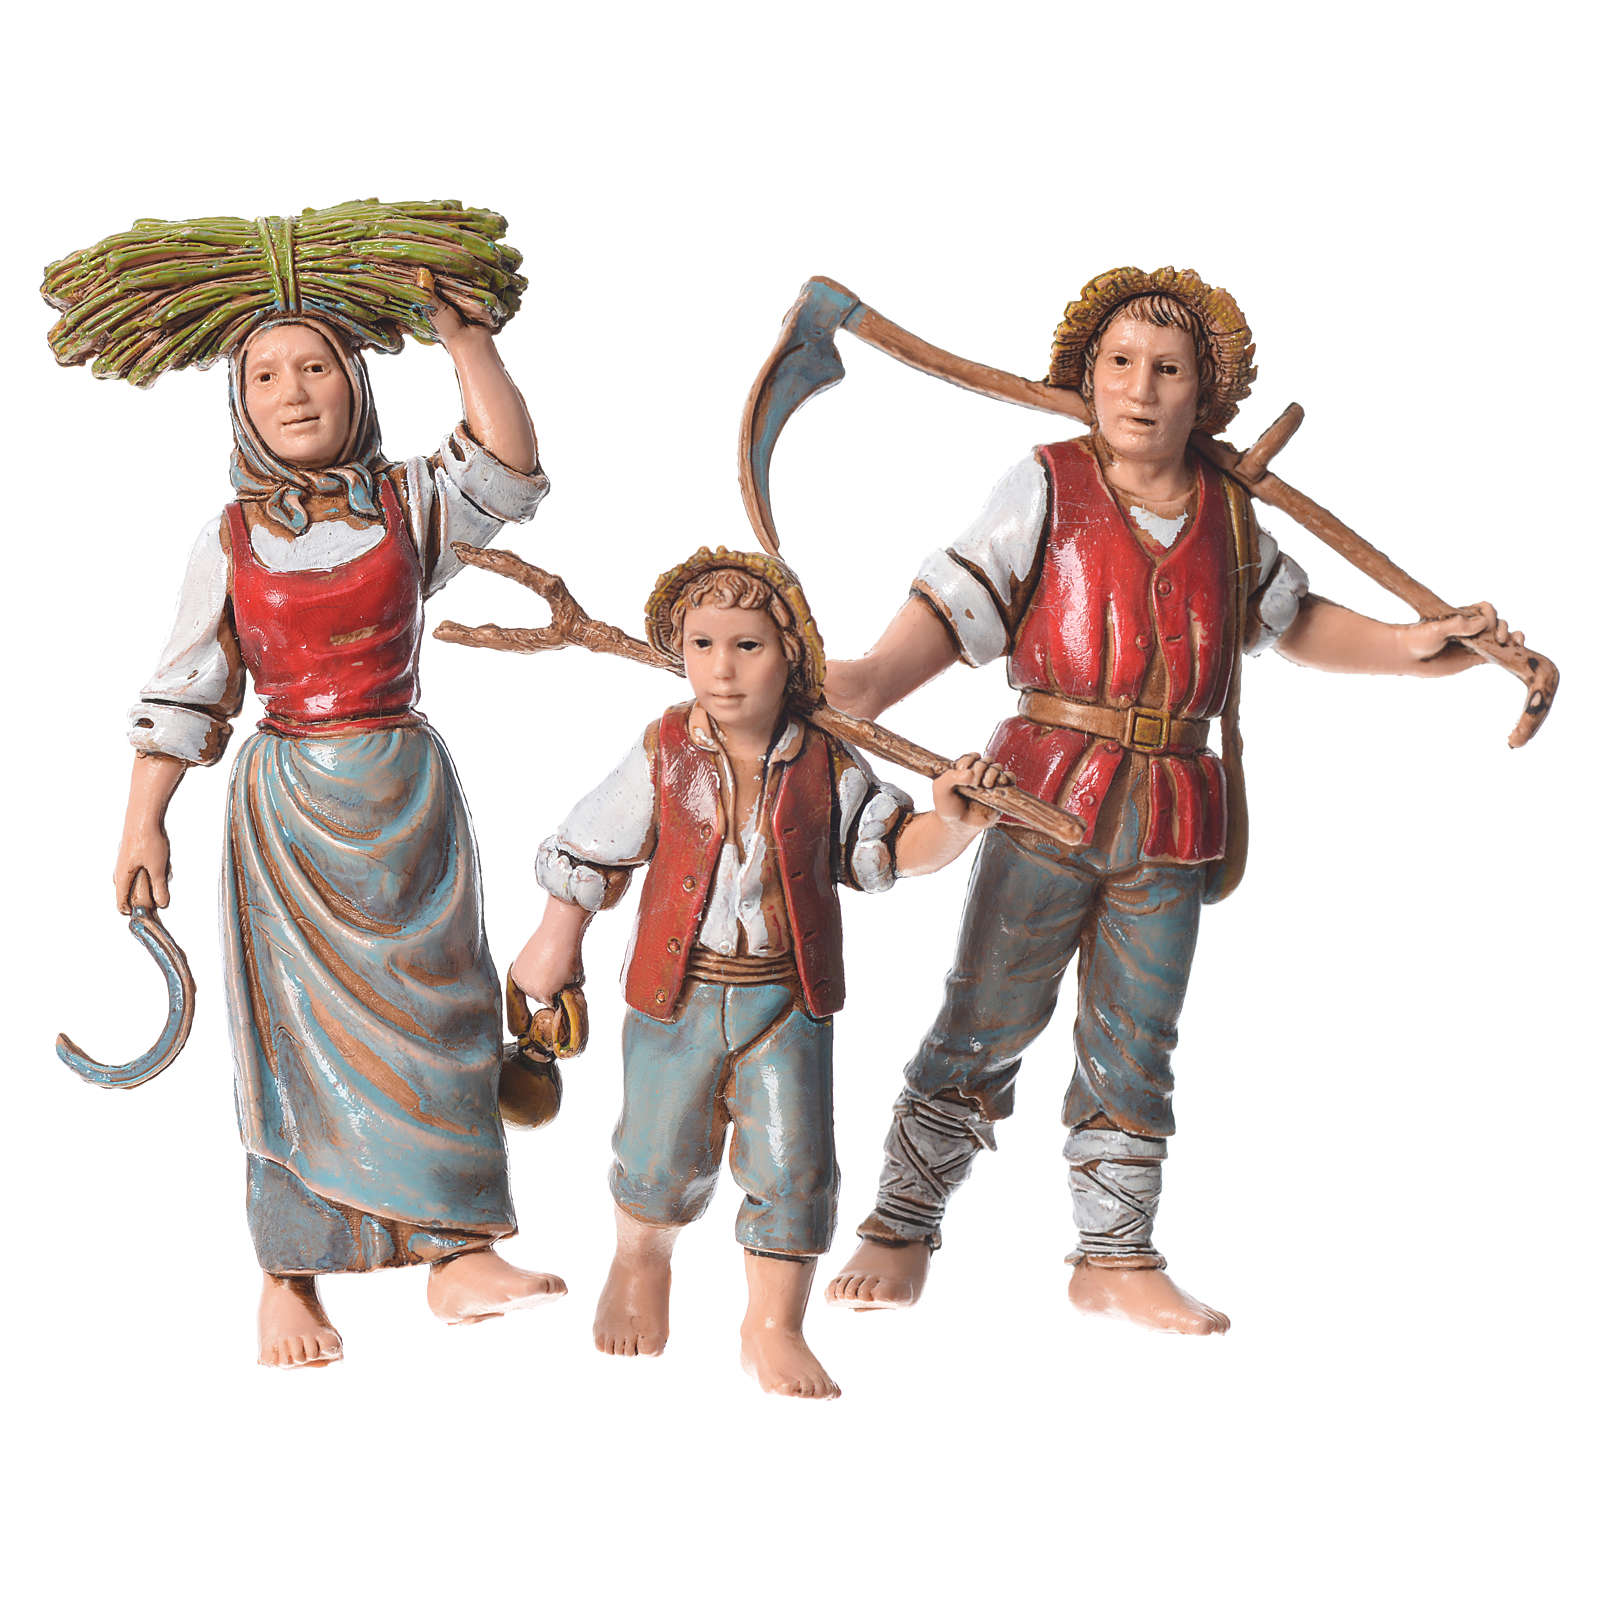 Family of farmers, 3 nativity figurines, 10cm Moranduzzo 4